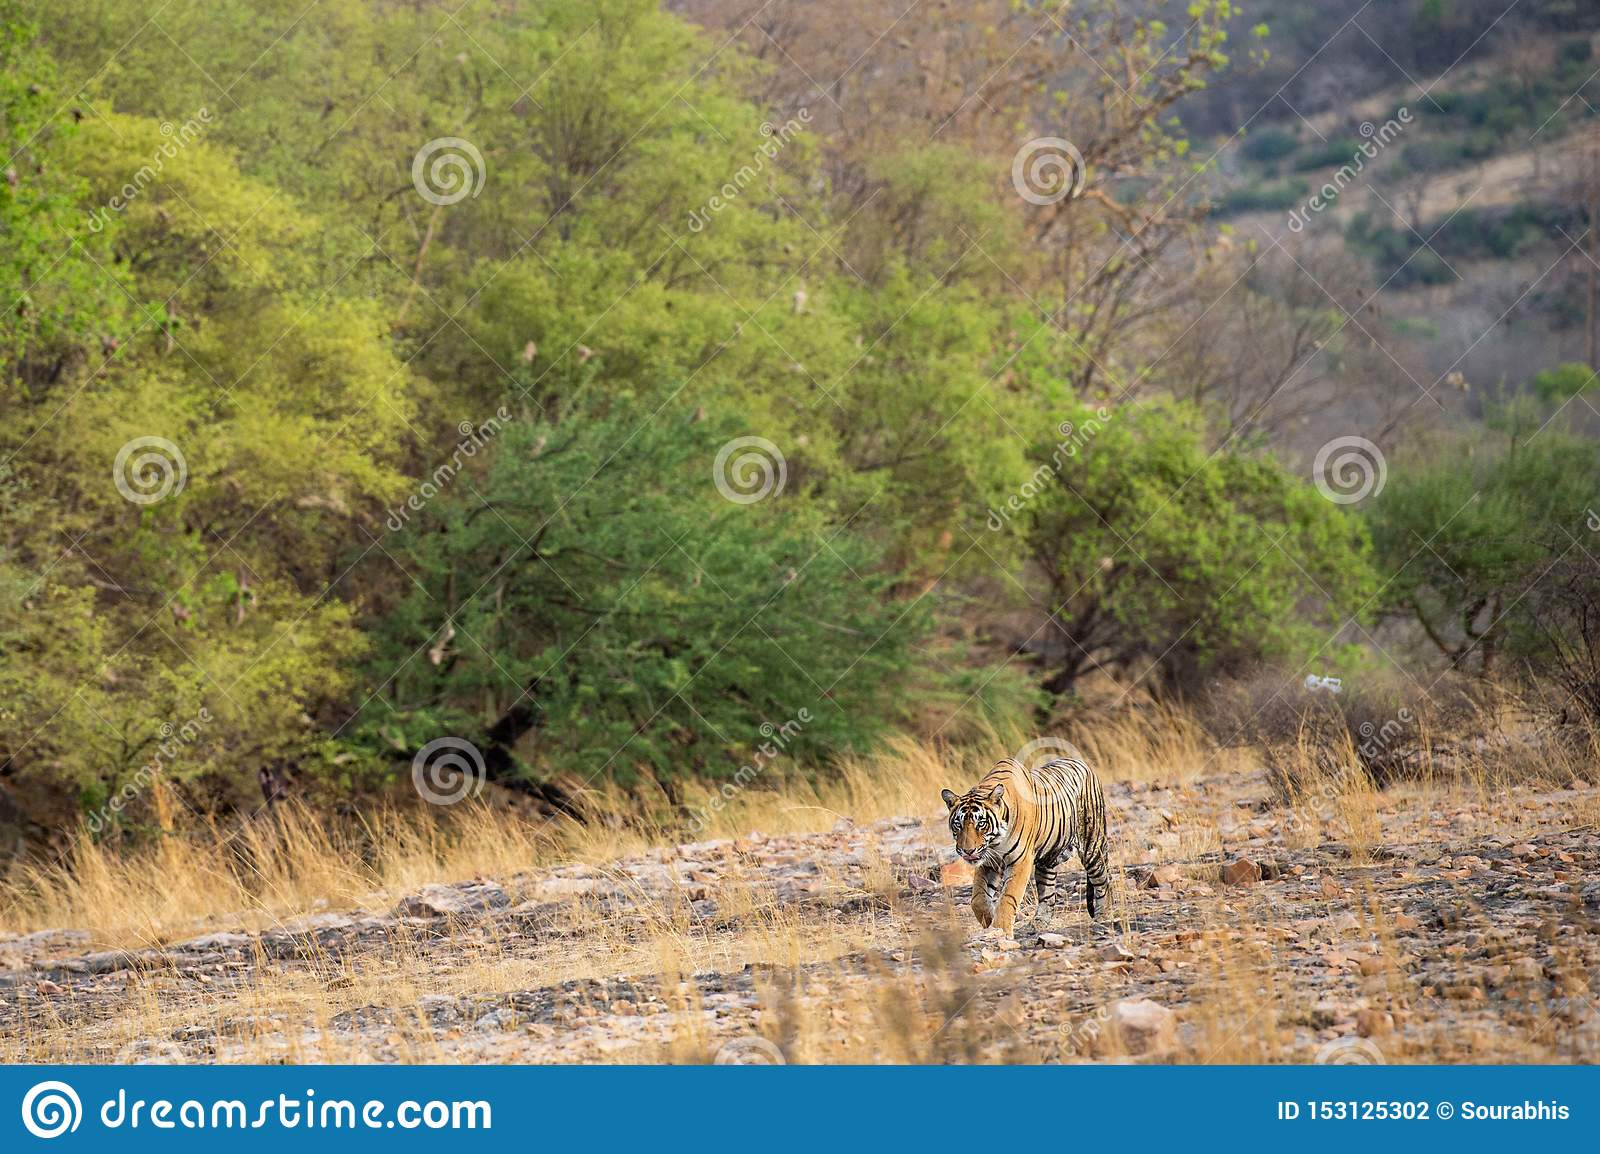 A royal bengal male tiger or panthera tigris on prowl with a beautiful green trees dry hills background landscape of ranthambore